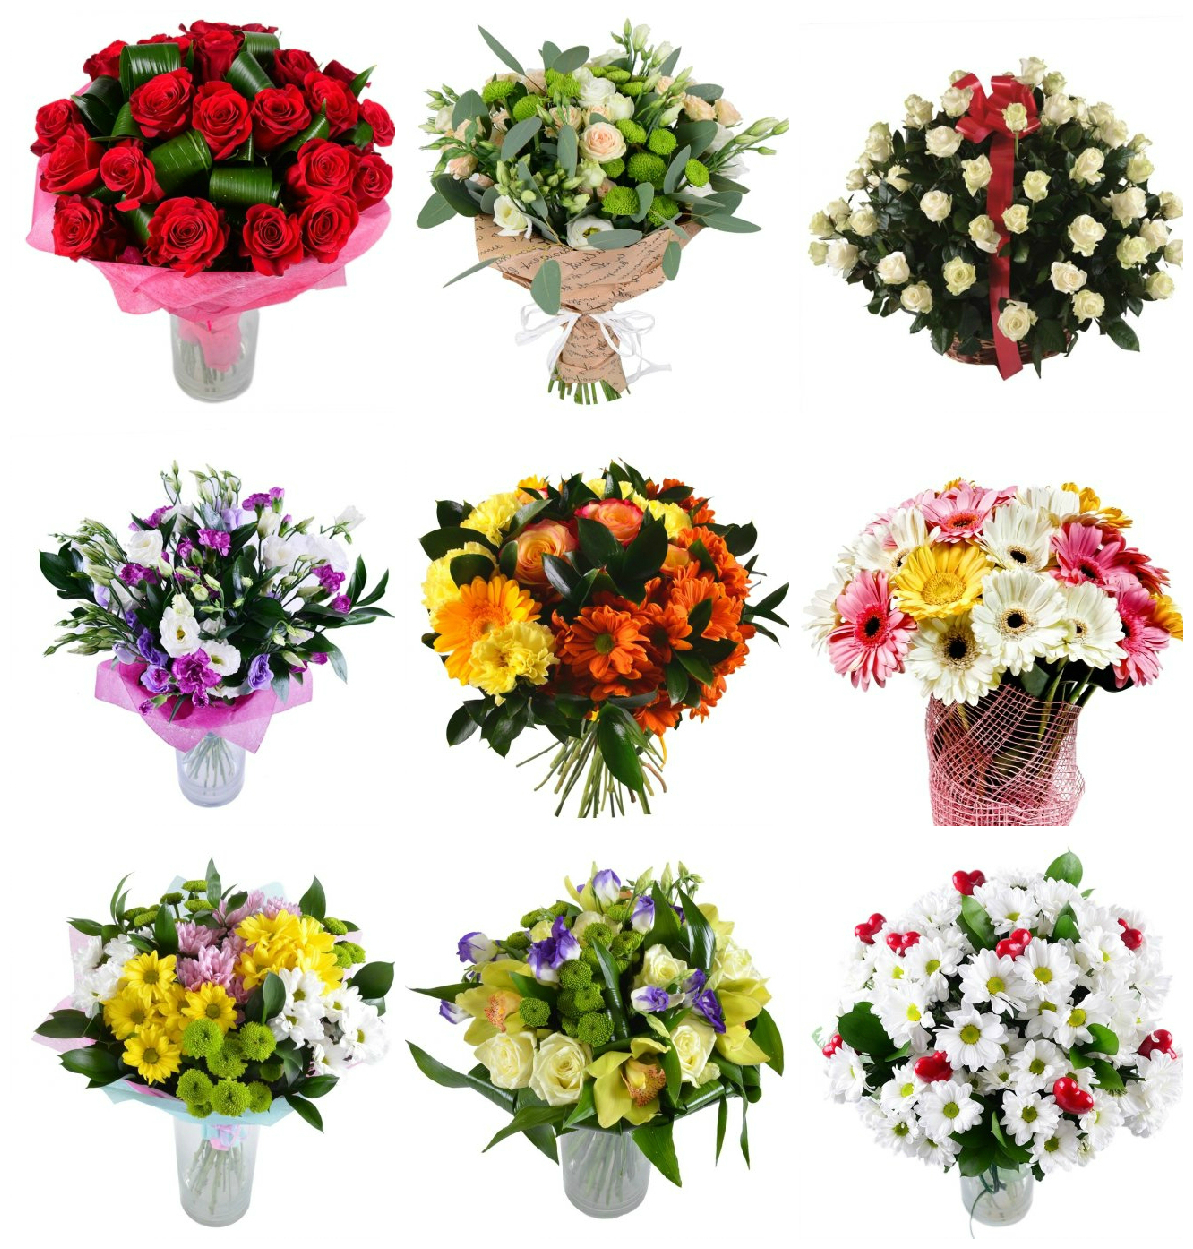 Different variants for bouquets for men at GE-Flowers.com